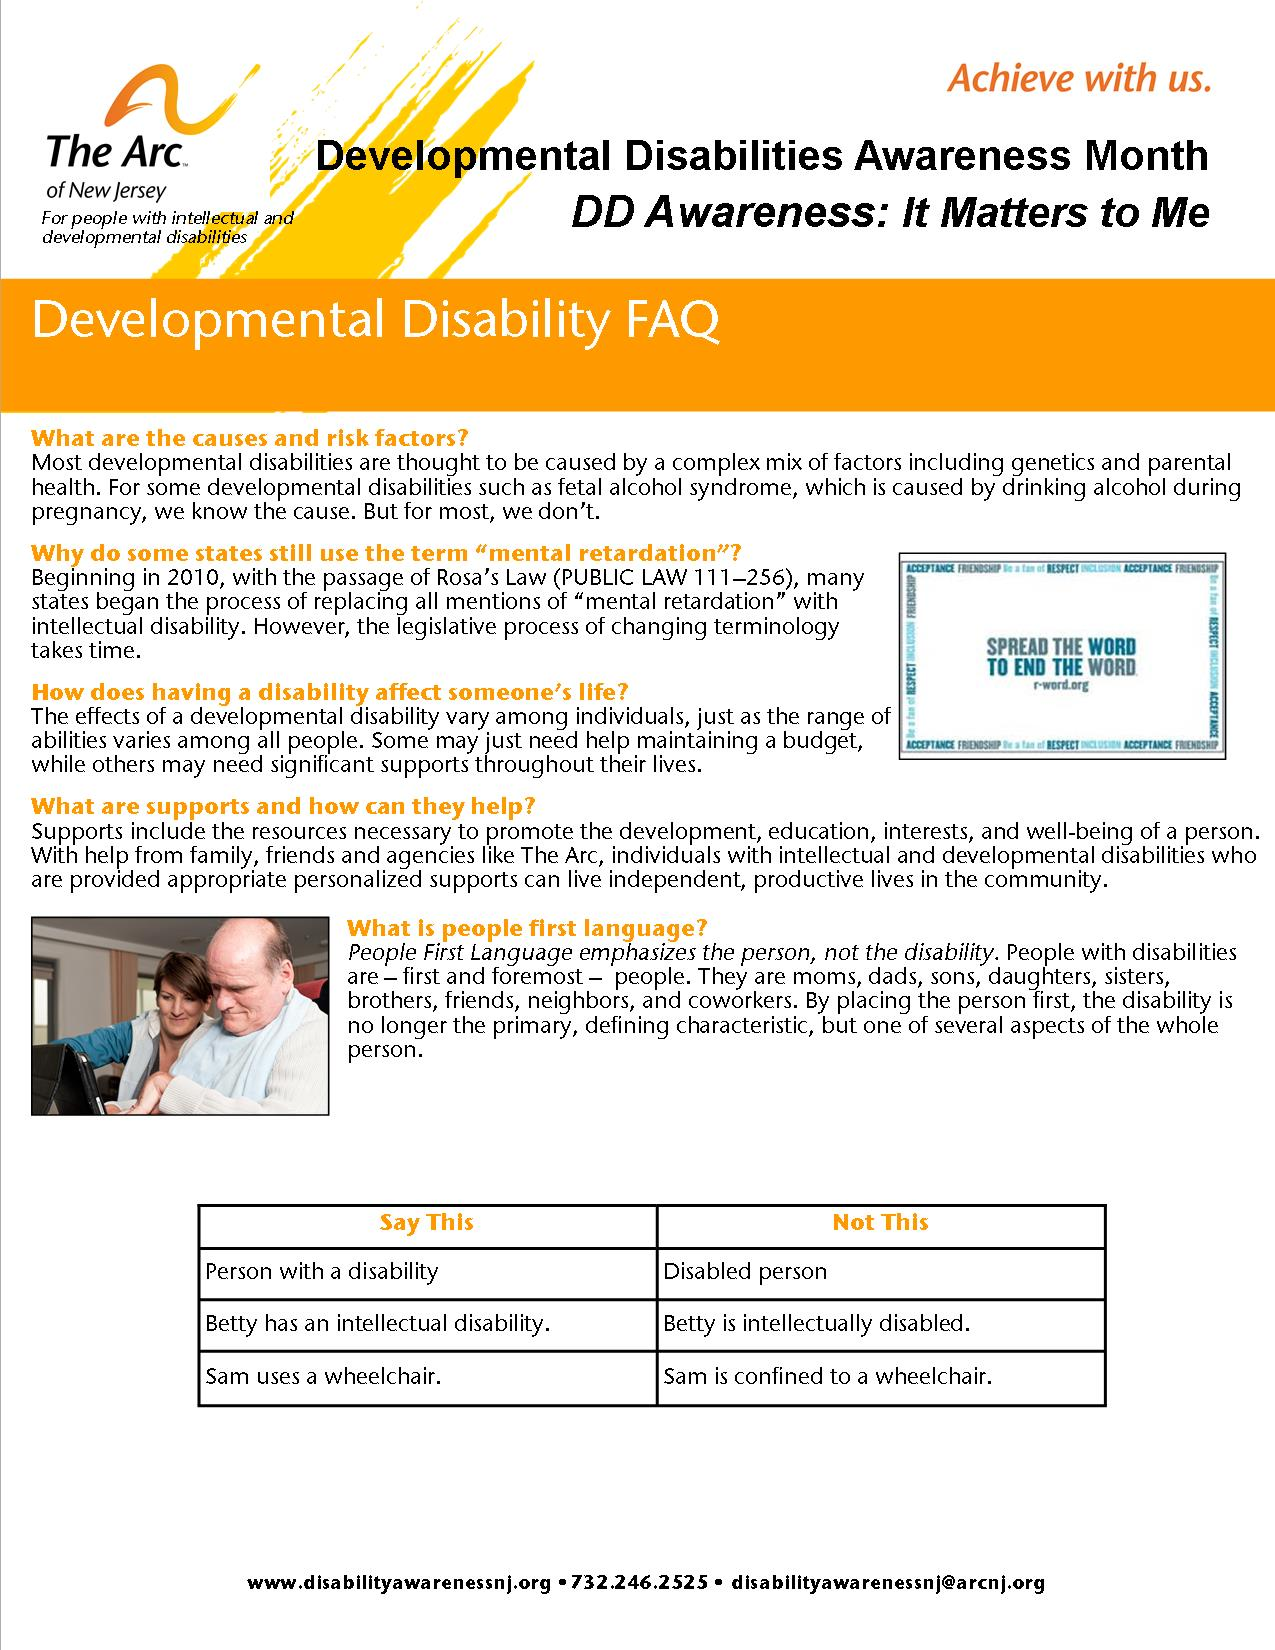 Developmental Disabilities Frequently Asked Questions